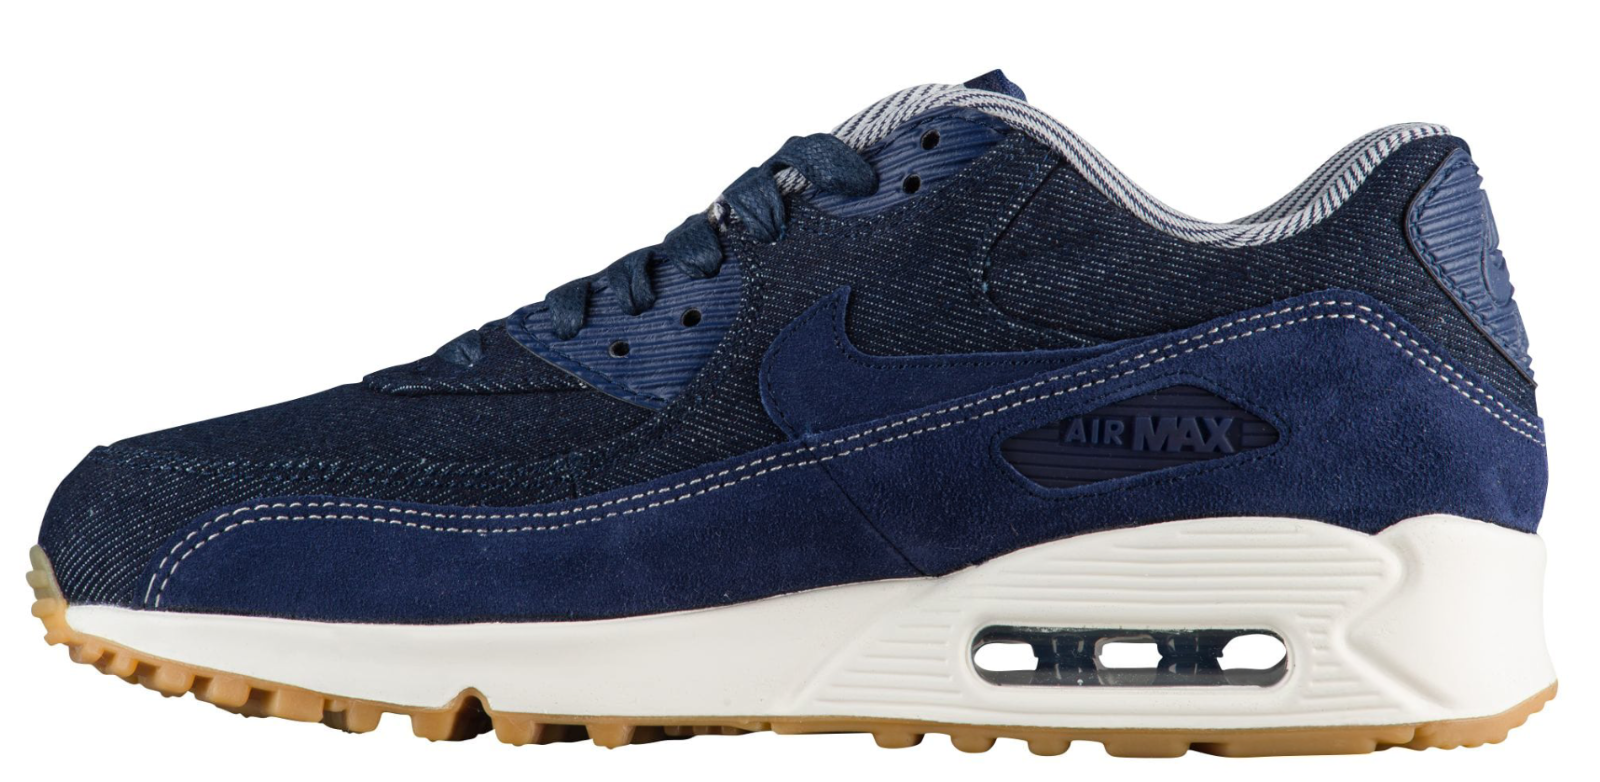 NEW femmes femmes NEW Nike Air Max 90 Chaussures Sneakers Size: 5.5 Color: bleu 085a68